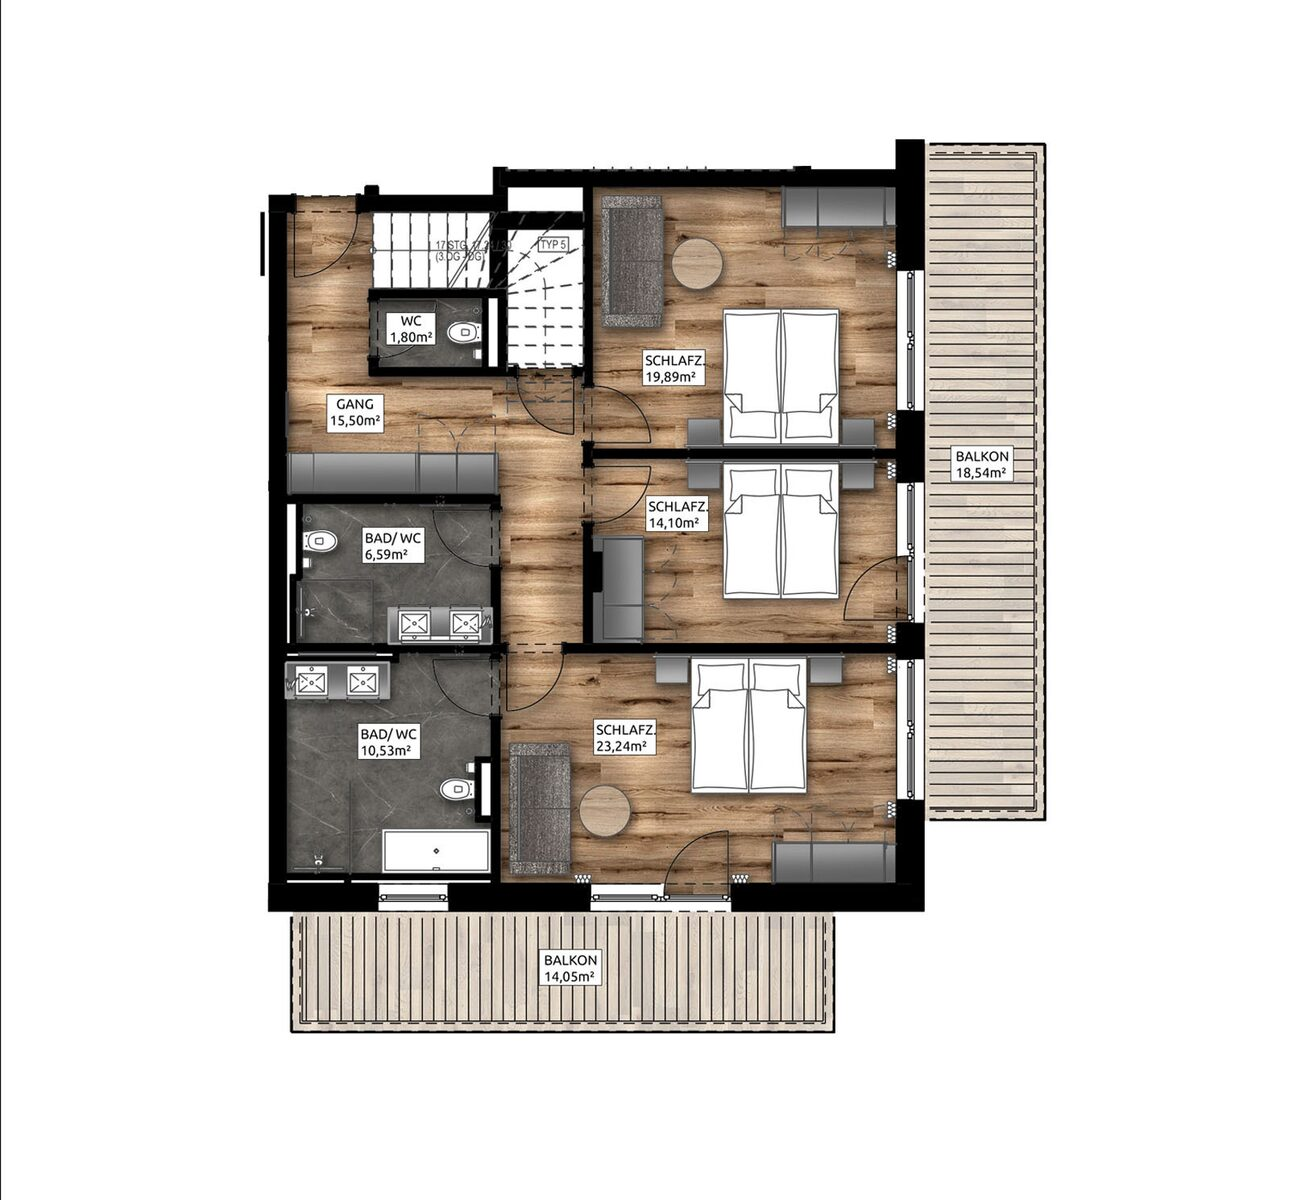 Penthouse Apartment | 6-8 Pers.